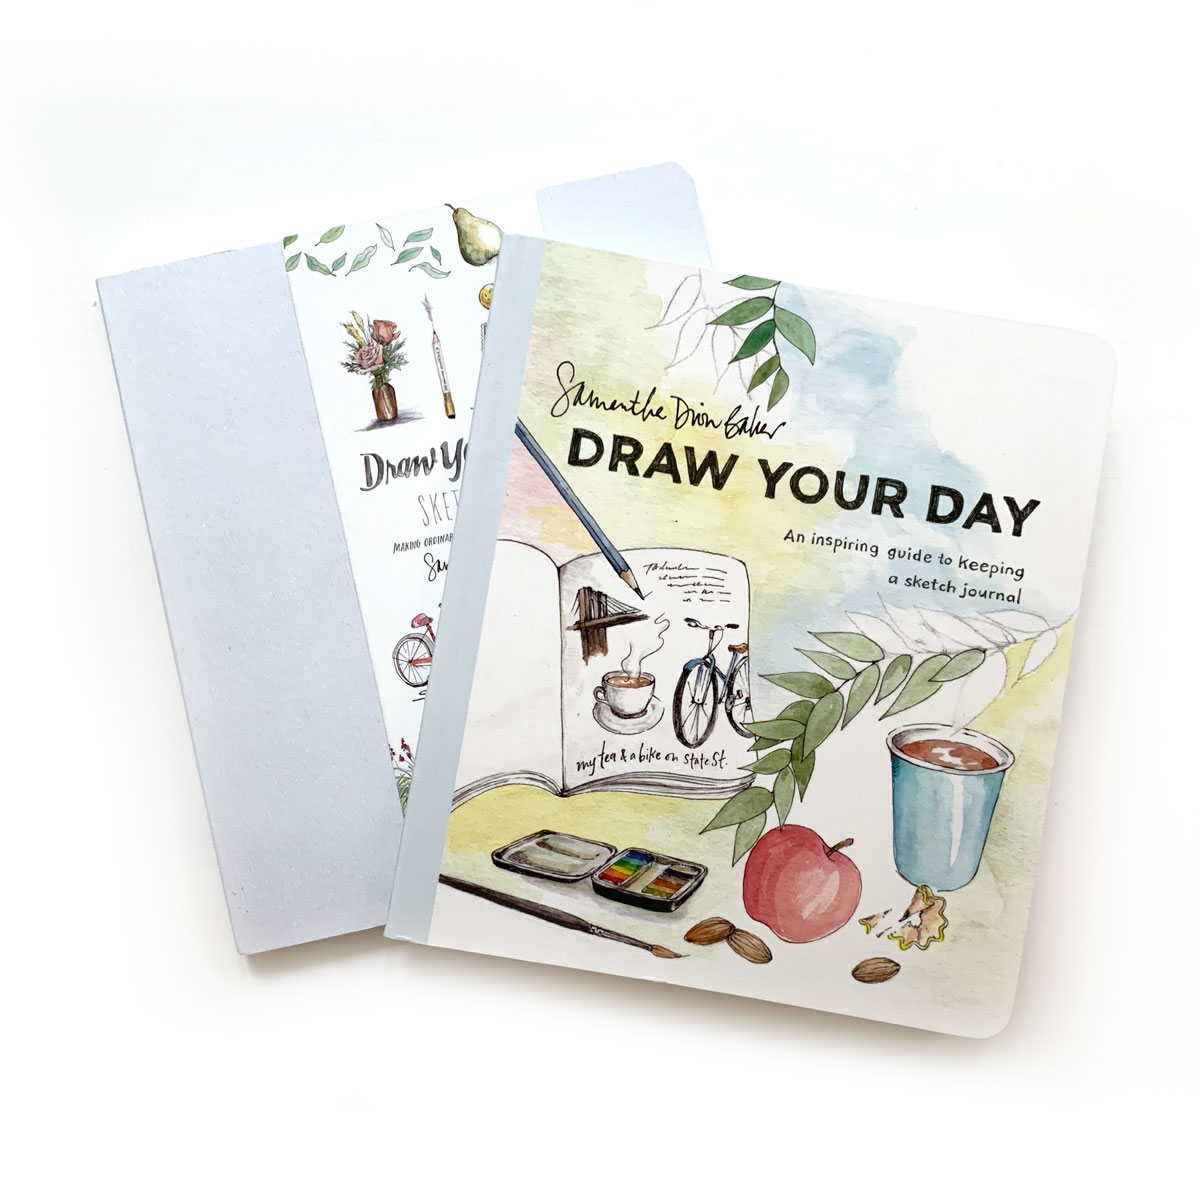 Draw Your Day  and accompanying Sketchbook by Samantha Dion Baker:  I admire those who keep up with a daily journal, and even more so those who do so in a sketched format. The joy I get from flipping through this book alone is worth the investment!